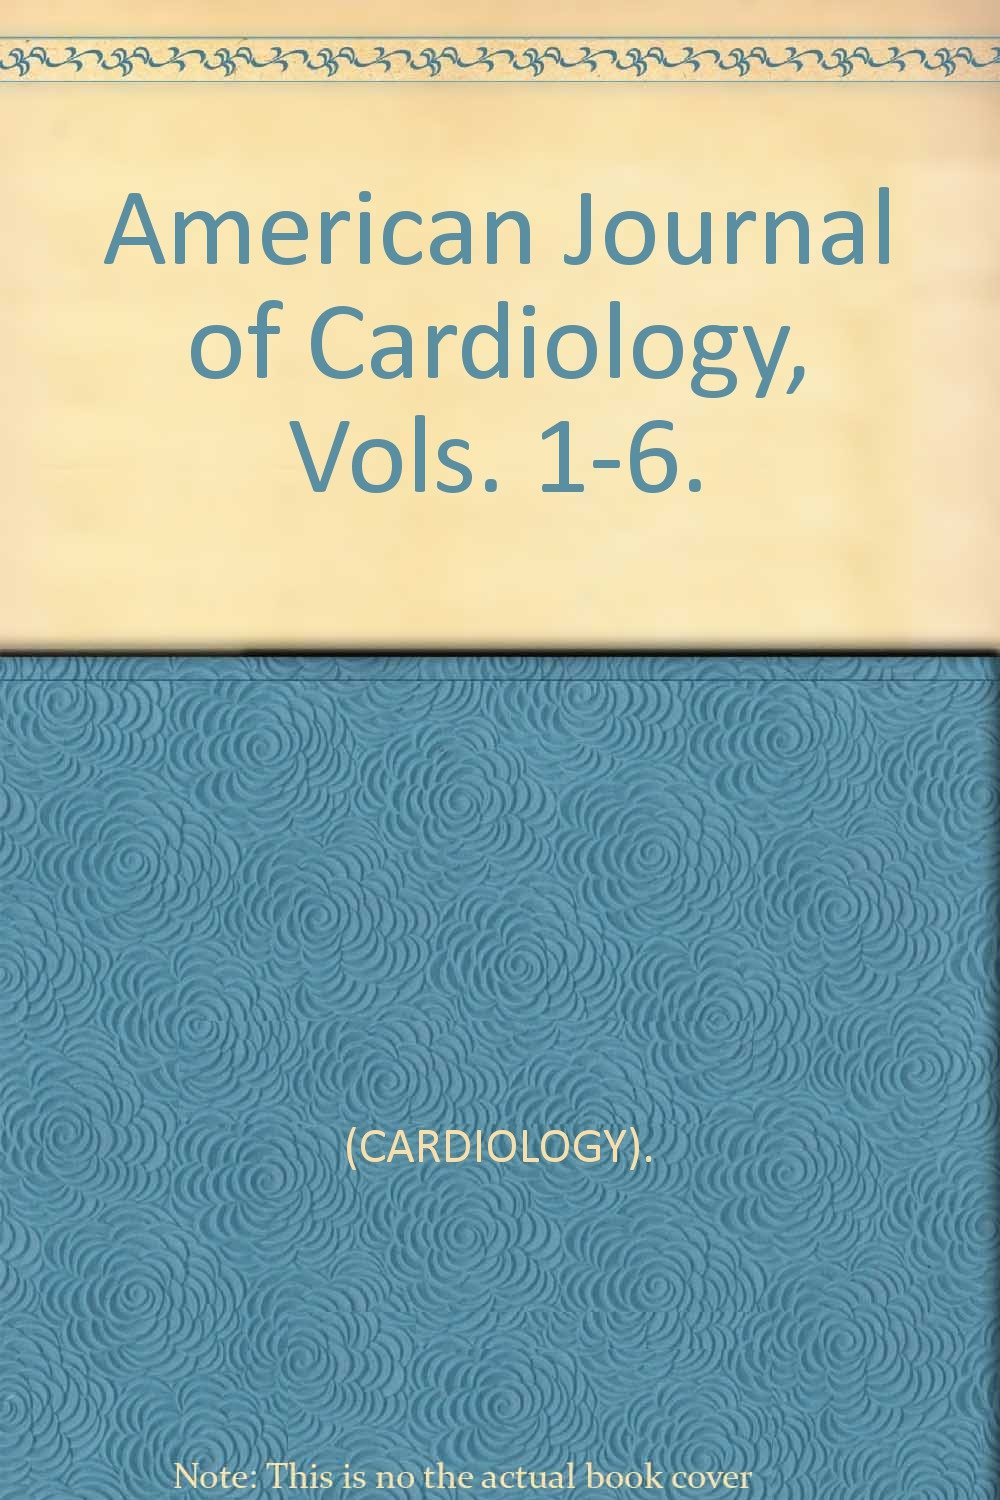 American Journal of Cardiology, Vols  1-6 : (CARDIOLOGY